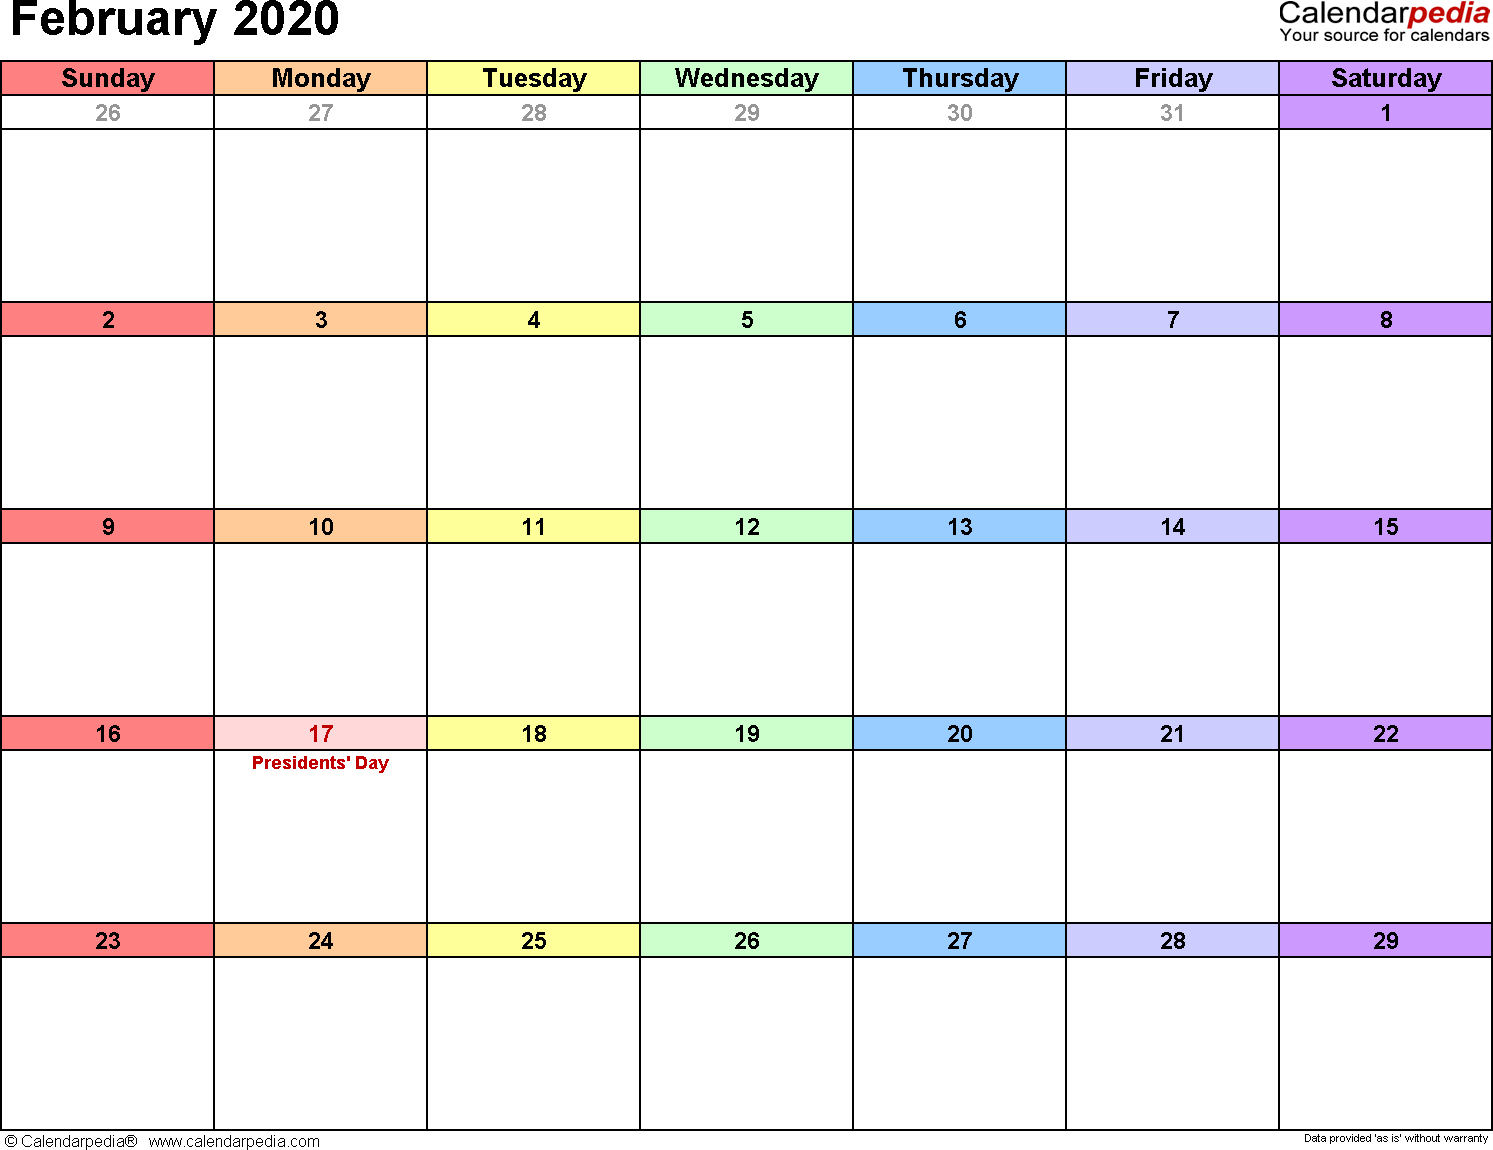 February 2020 Calendars February 2020 Calendars for Word, Excel & PDF